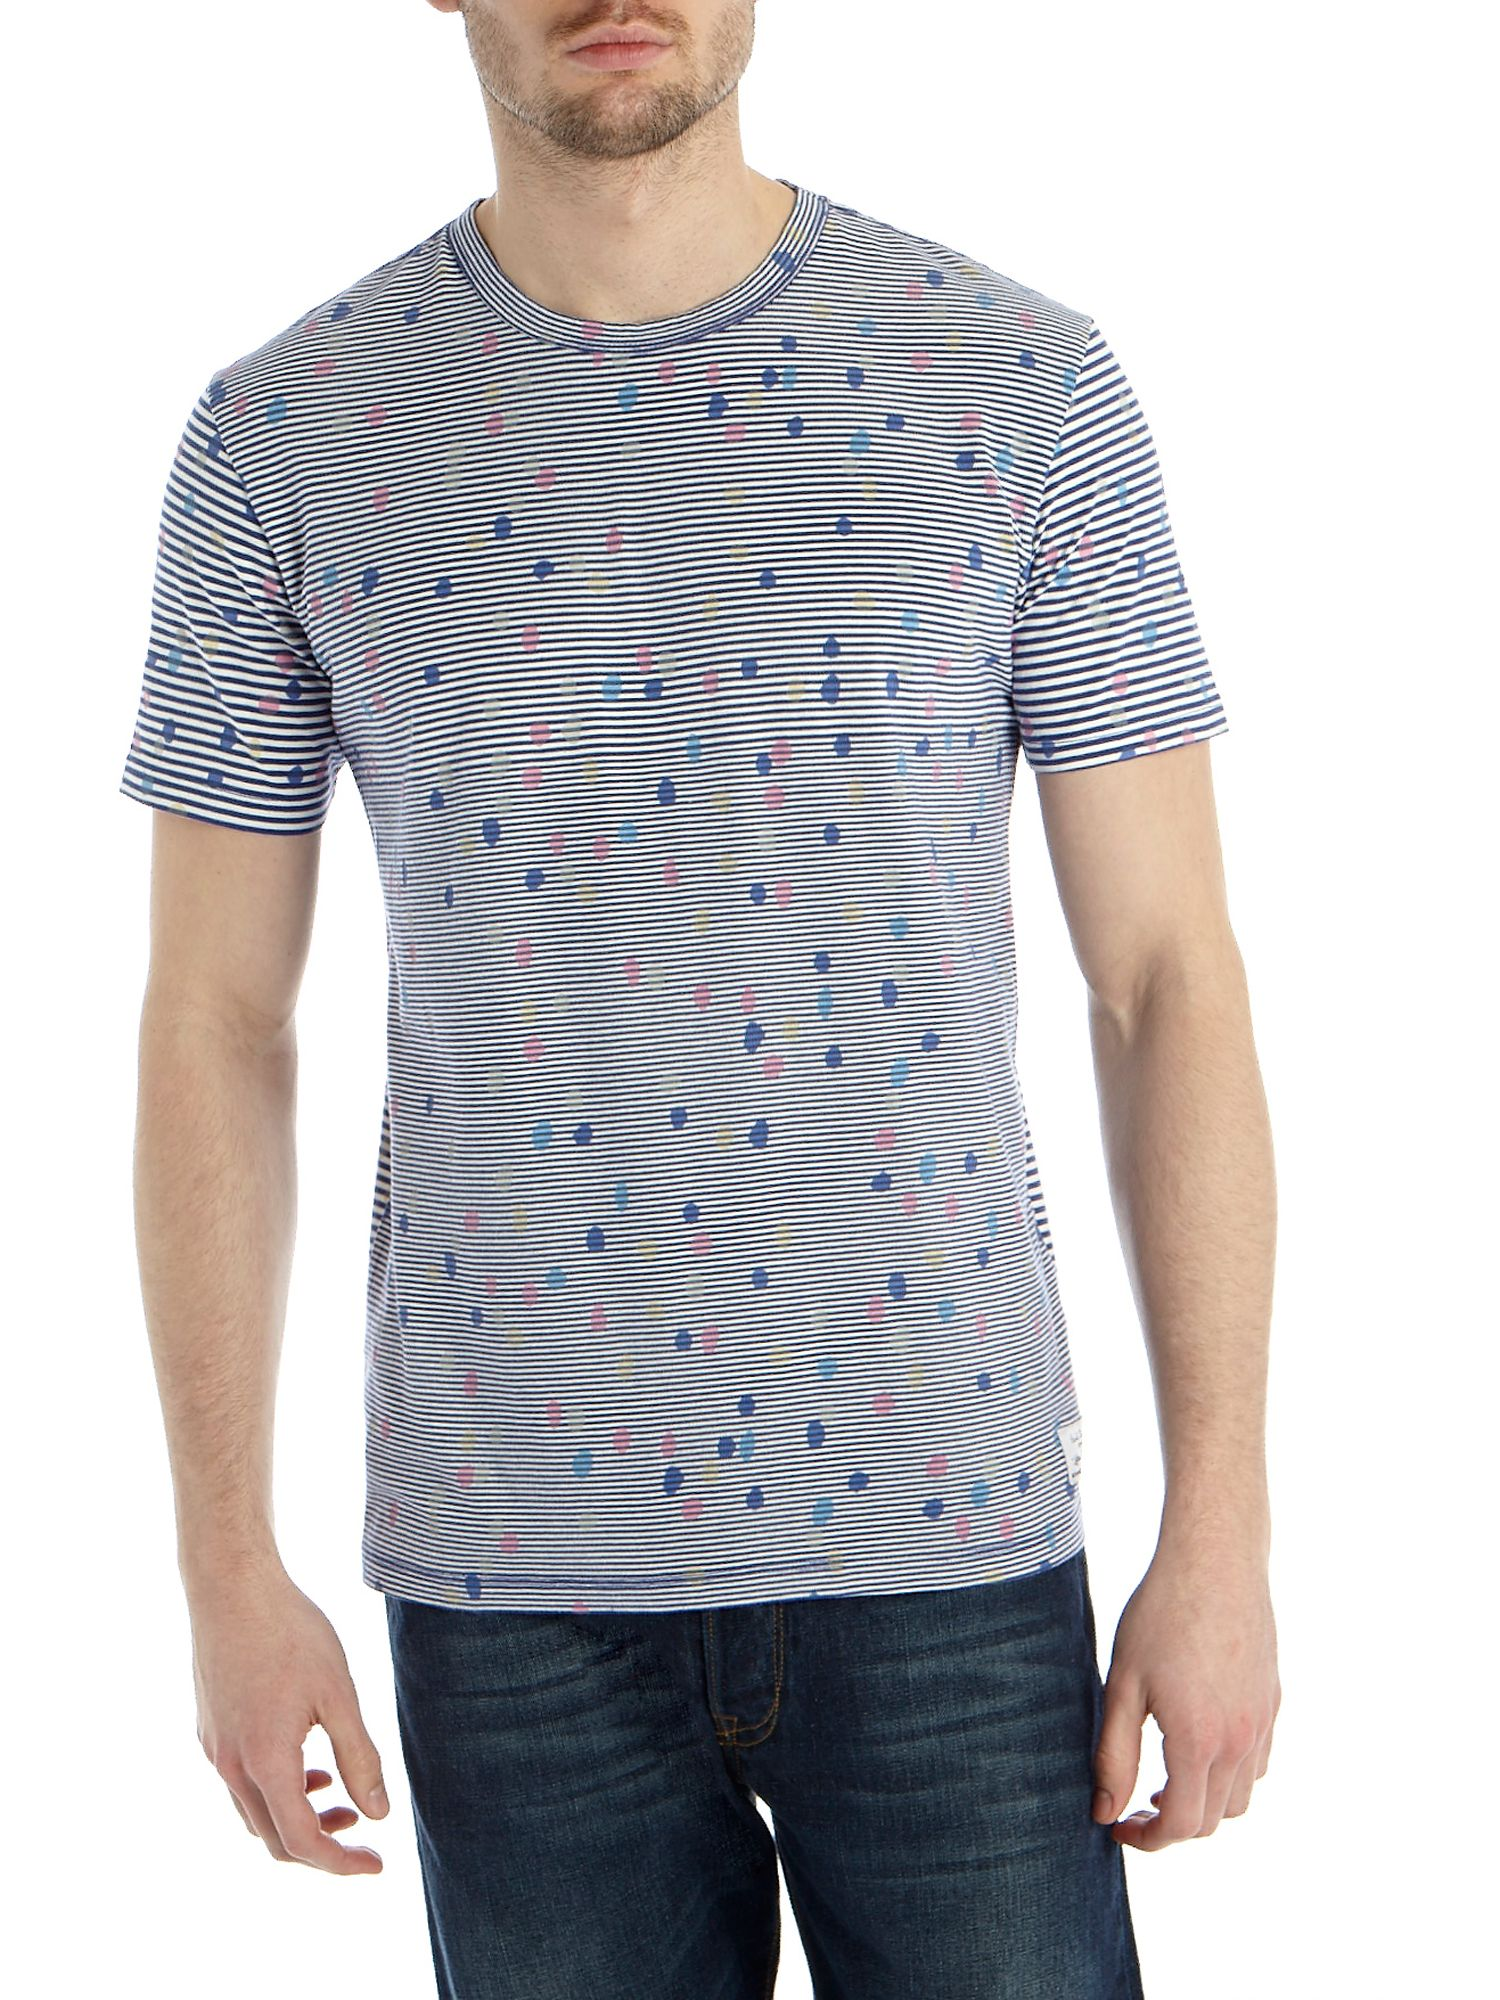 Spot stripe t-shirt